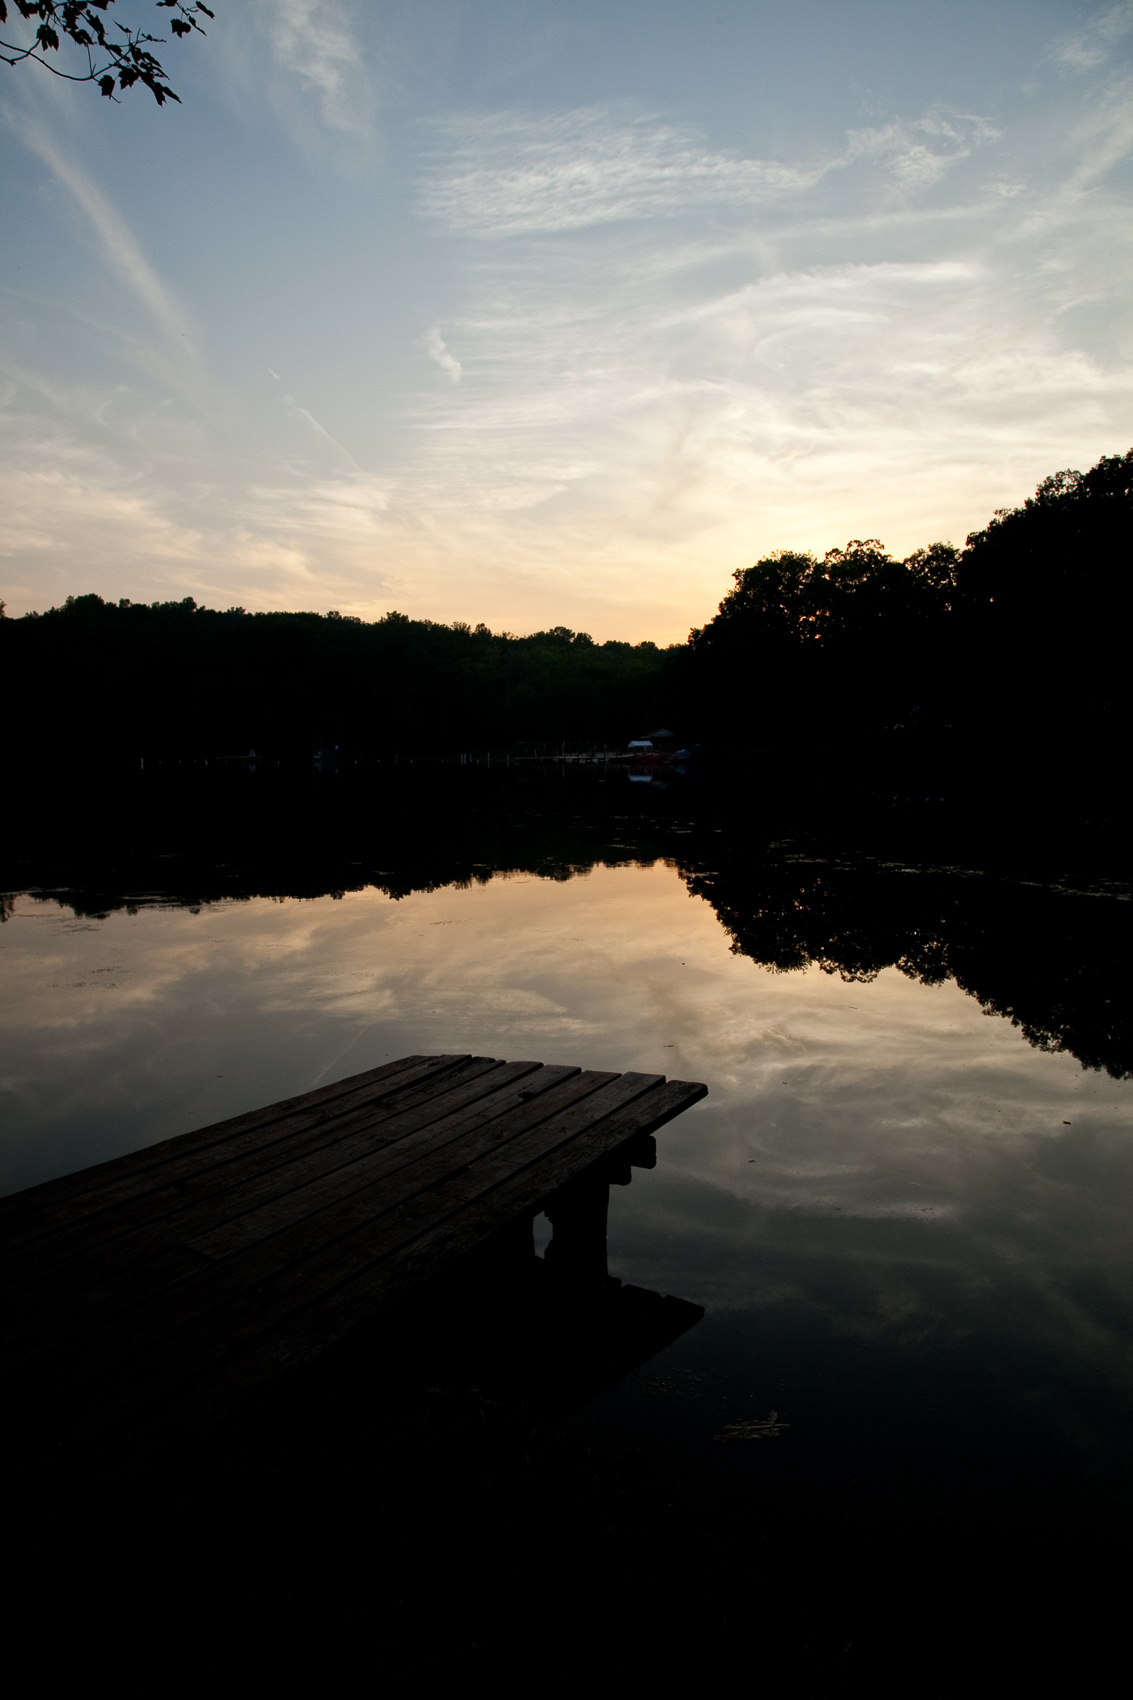 Sunset over Conewago Lake in Mount Gretna, PA | J. Eldon Zimmerman Photography | Lancaster, PA Commercial Photographer